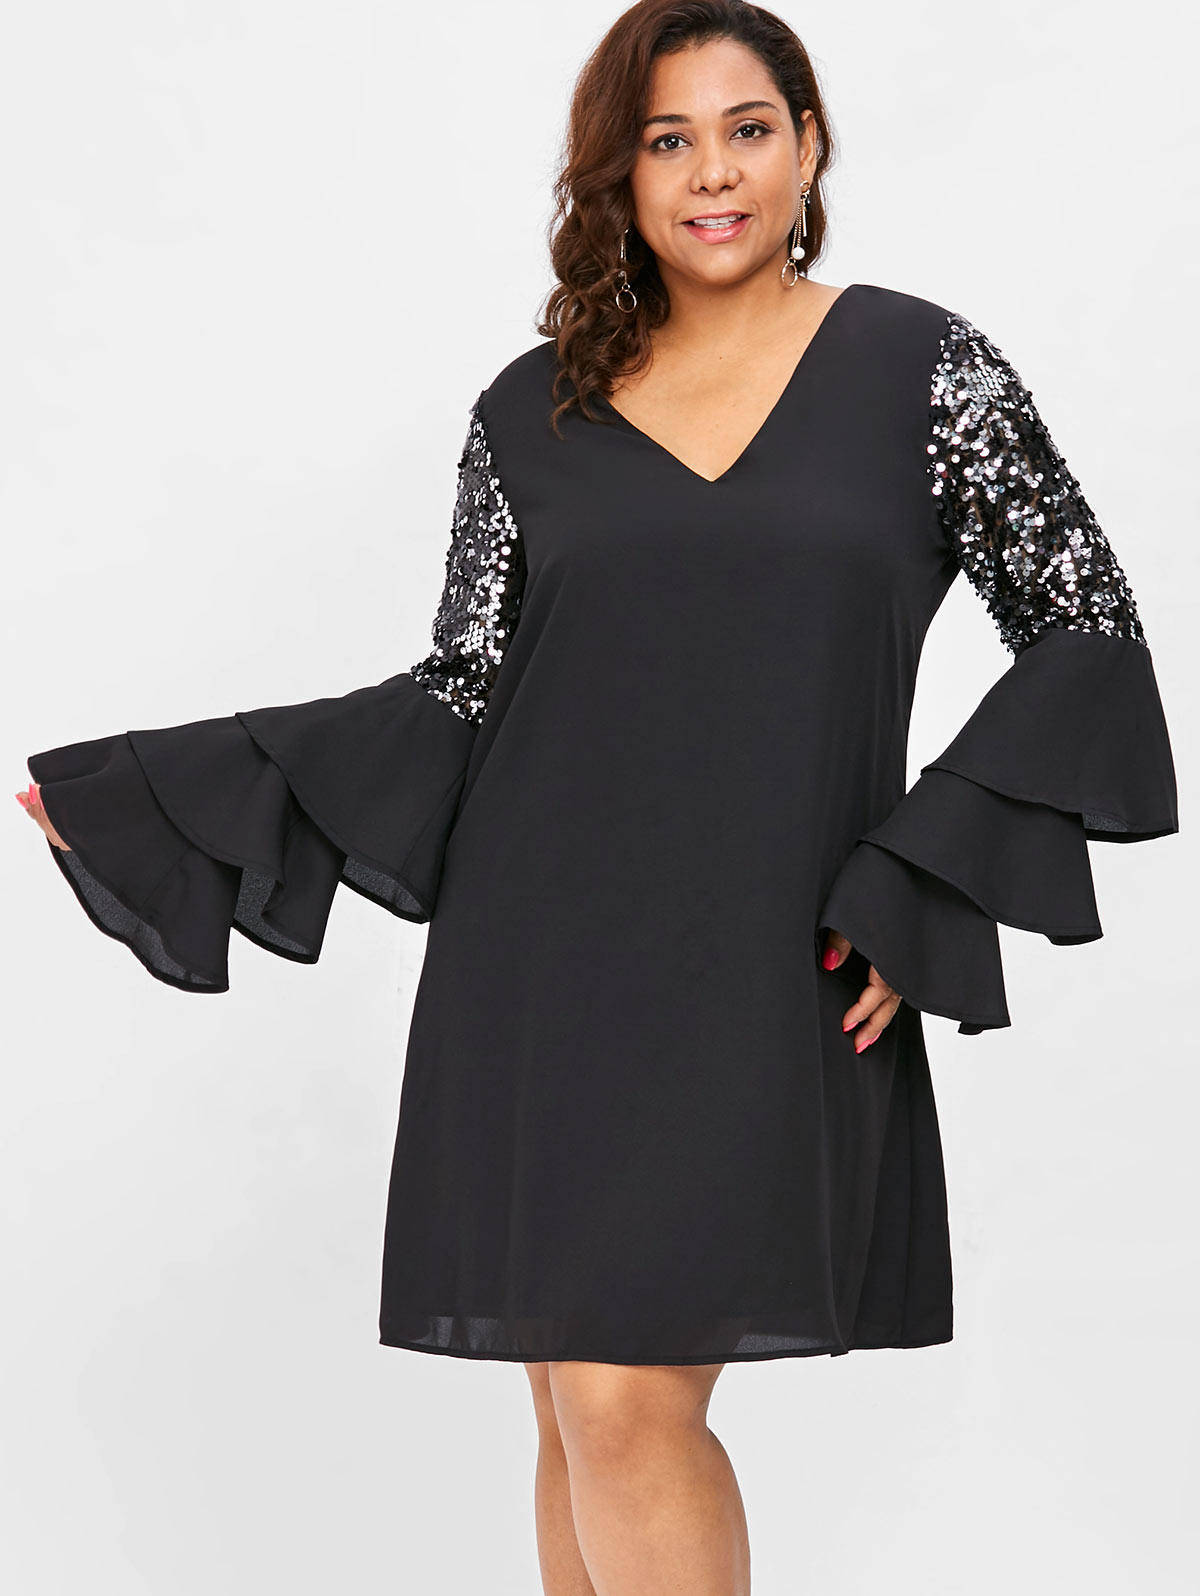 Detail Feedback Questions about Wipalo Plus Size 5XL Tiered Flare Sleeve  Sequin Embellished Mini Dress Solid V Neck Shift Dress Elegant Party Dress  Vestidos ... 40e9c5116030